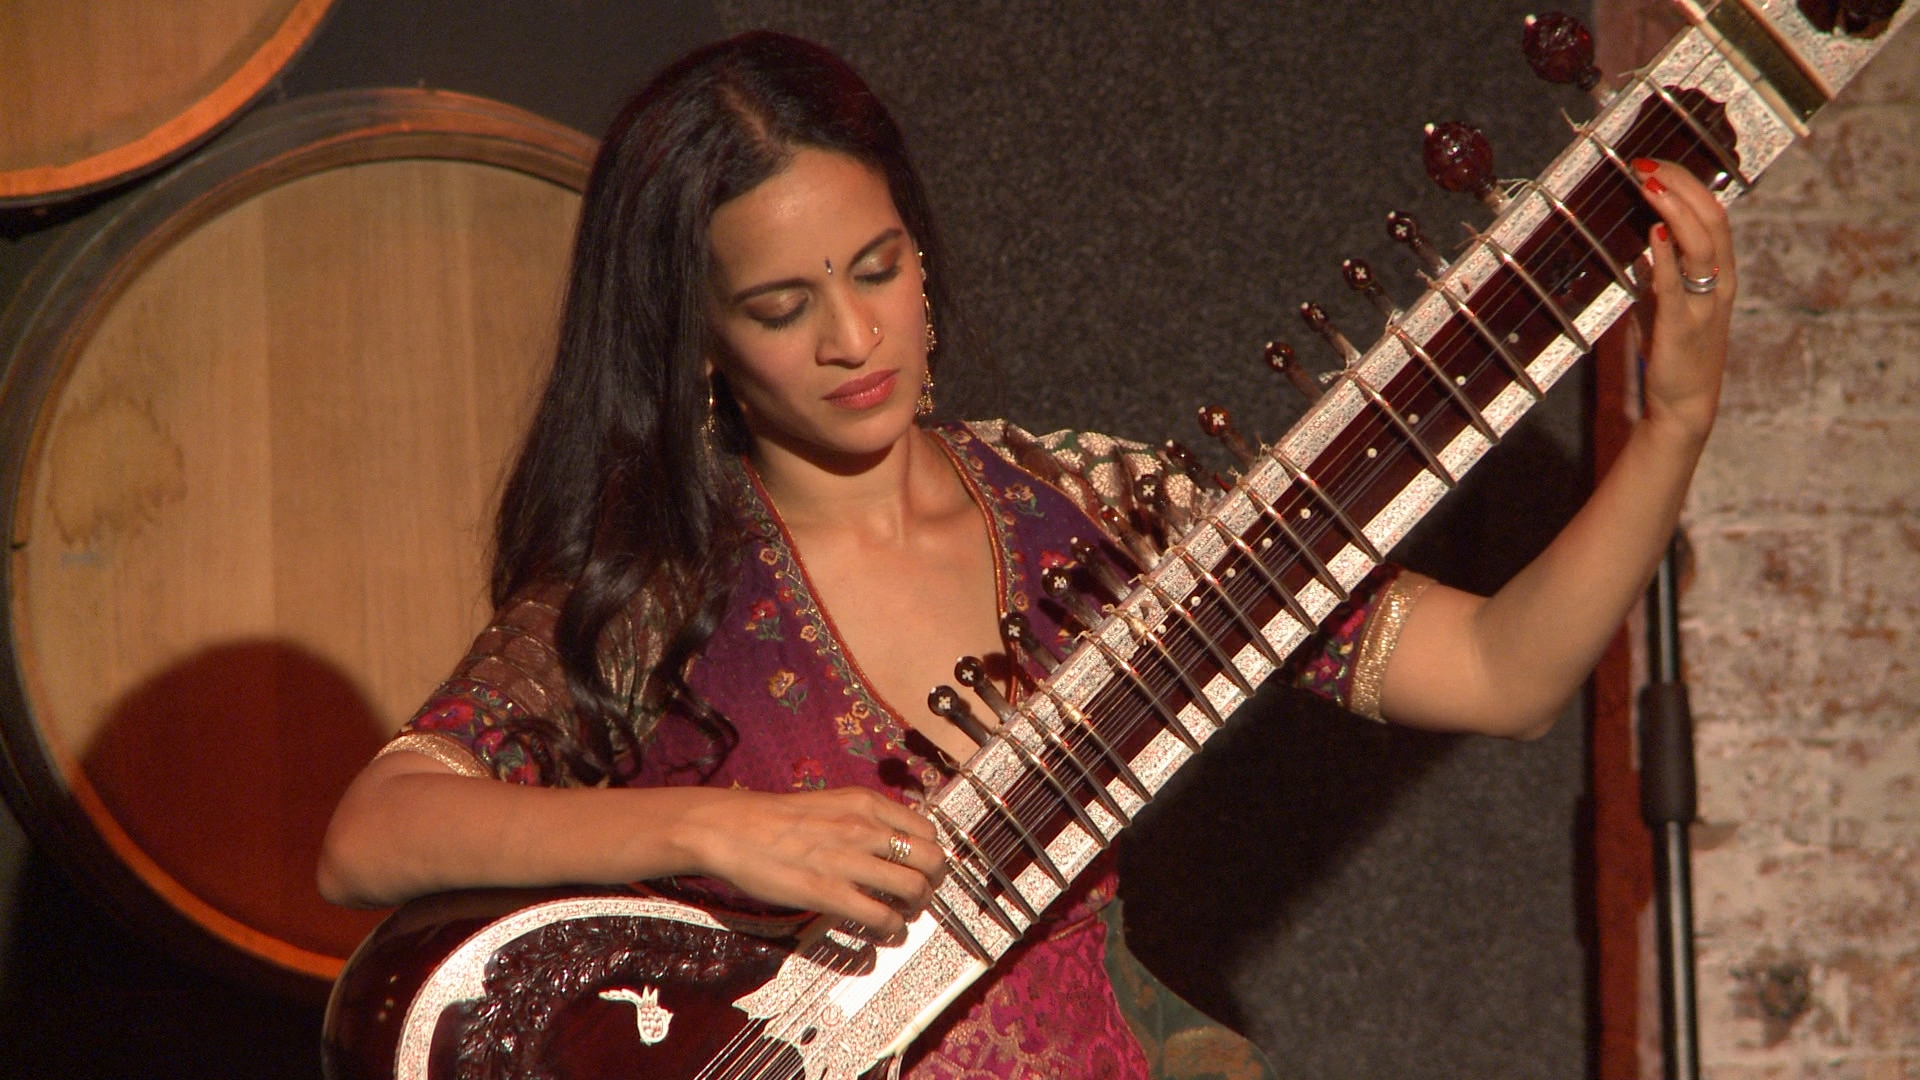 Quick Hits: Anoushka Shankar performs Casi Uno